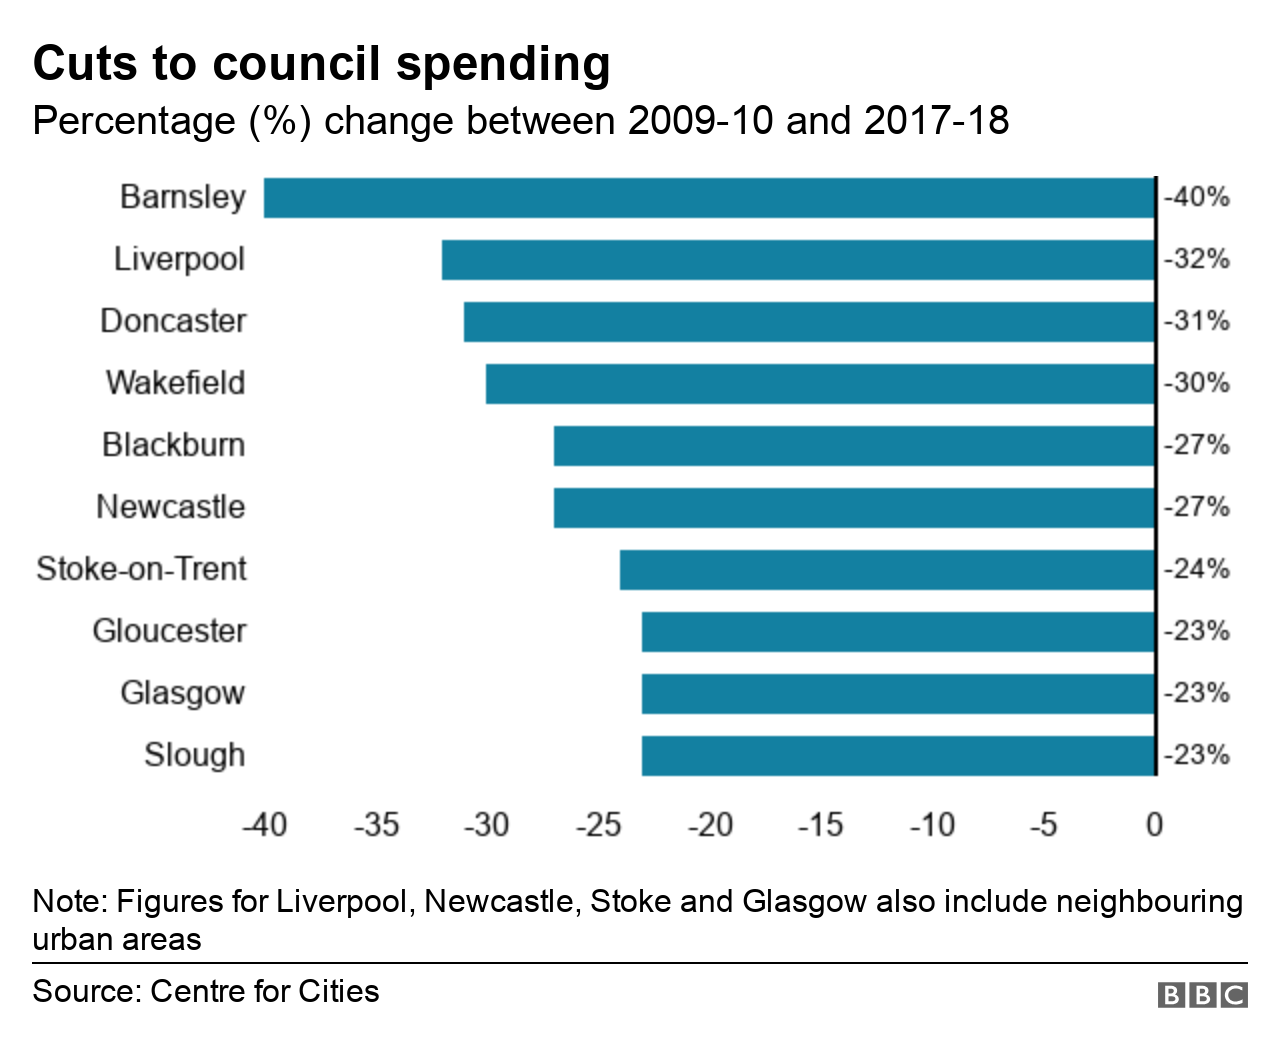 The cities with the biggest % change in day to day spending